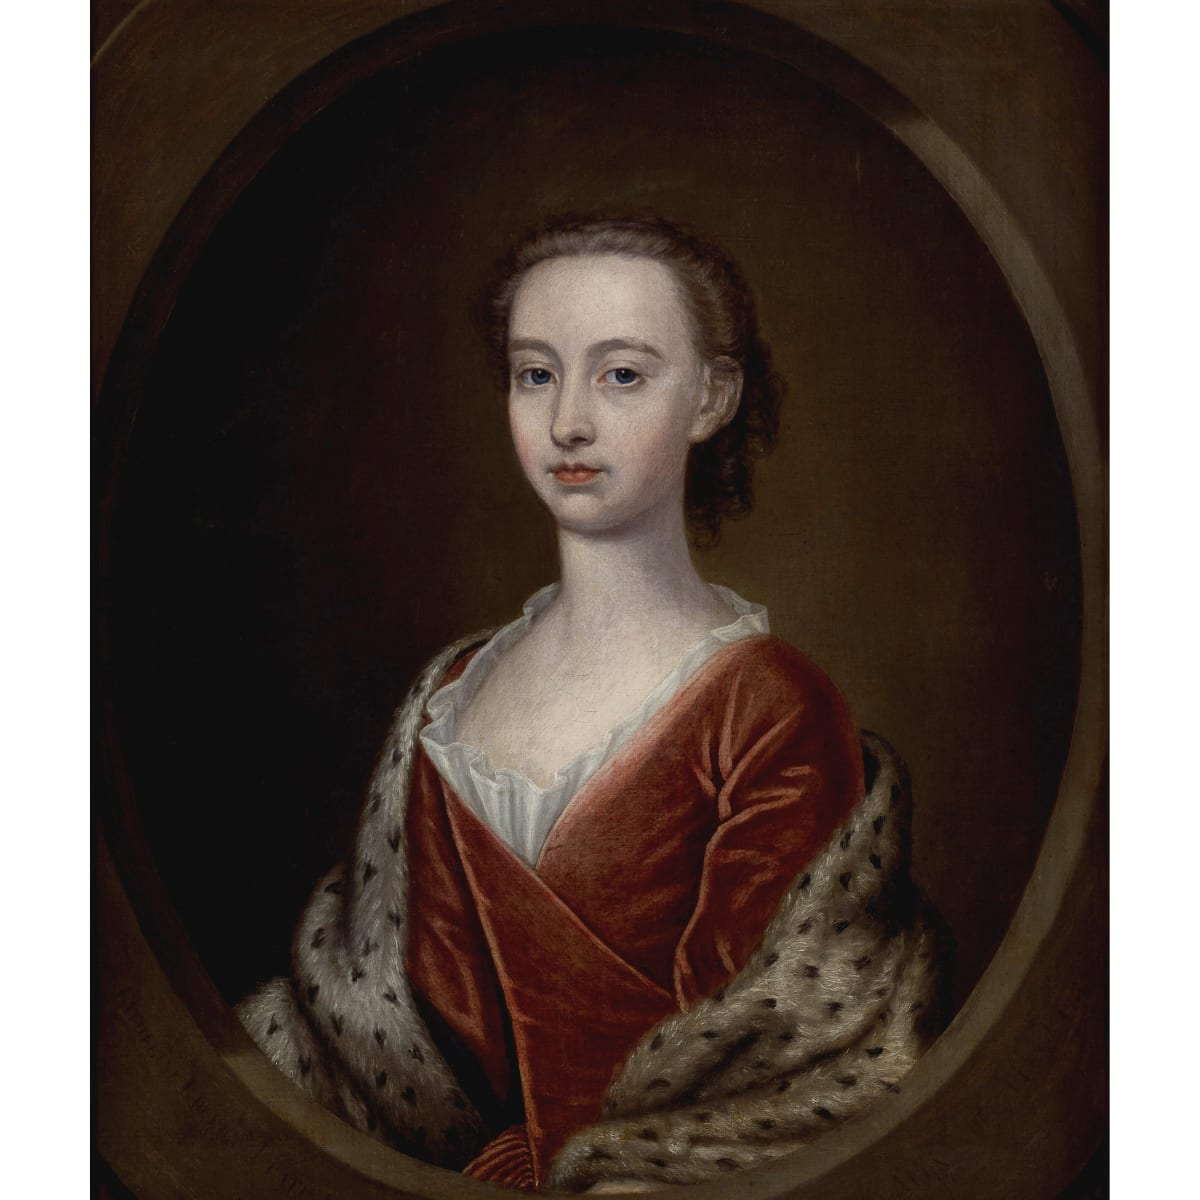 John Alexander Lady Catherine Gordon, 1738 signed, titled 'Lady Catherine Gordon aetatis 14' and dated 1738; signed, titled 'Lady Catherine Gordon aetatis 14' and dated 1738 in another hand verso oil on canvas 30 x 25 inches